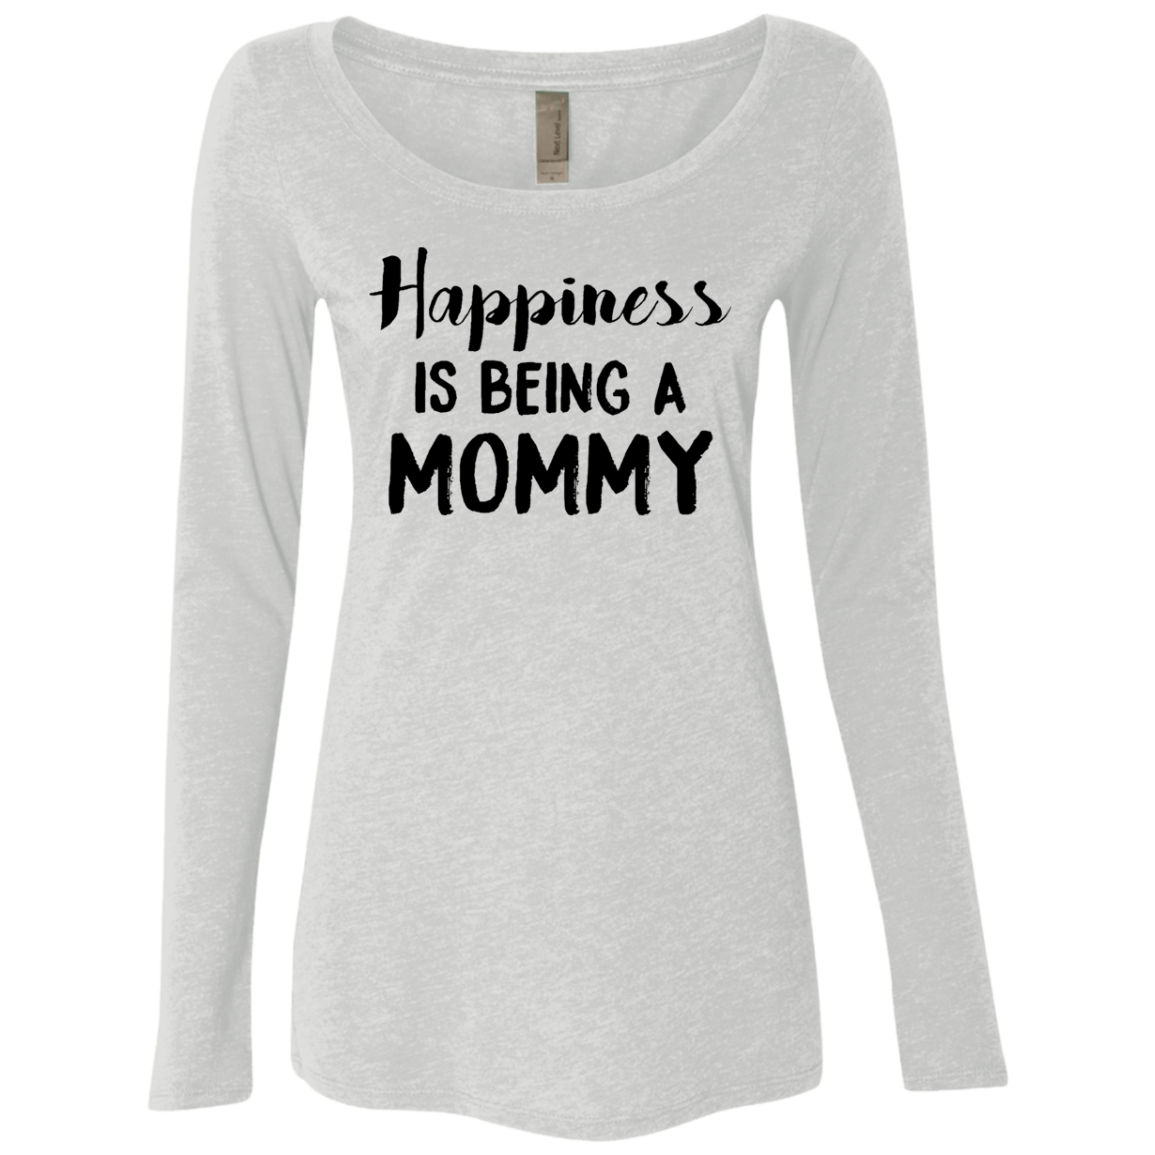 Happiness Is Being A Mommy Women's Long Sleeve Tee